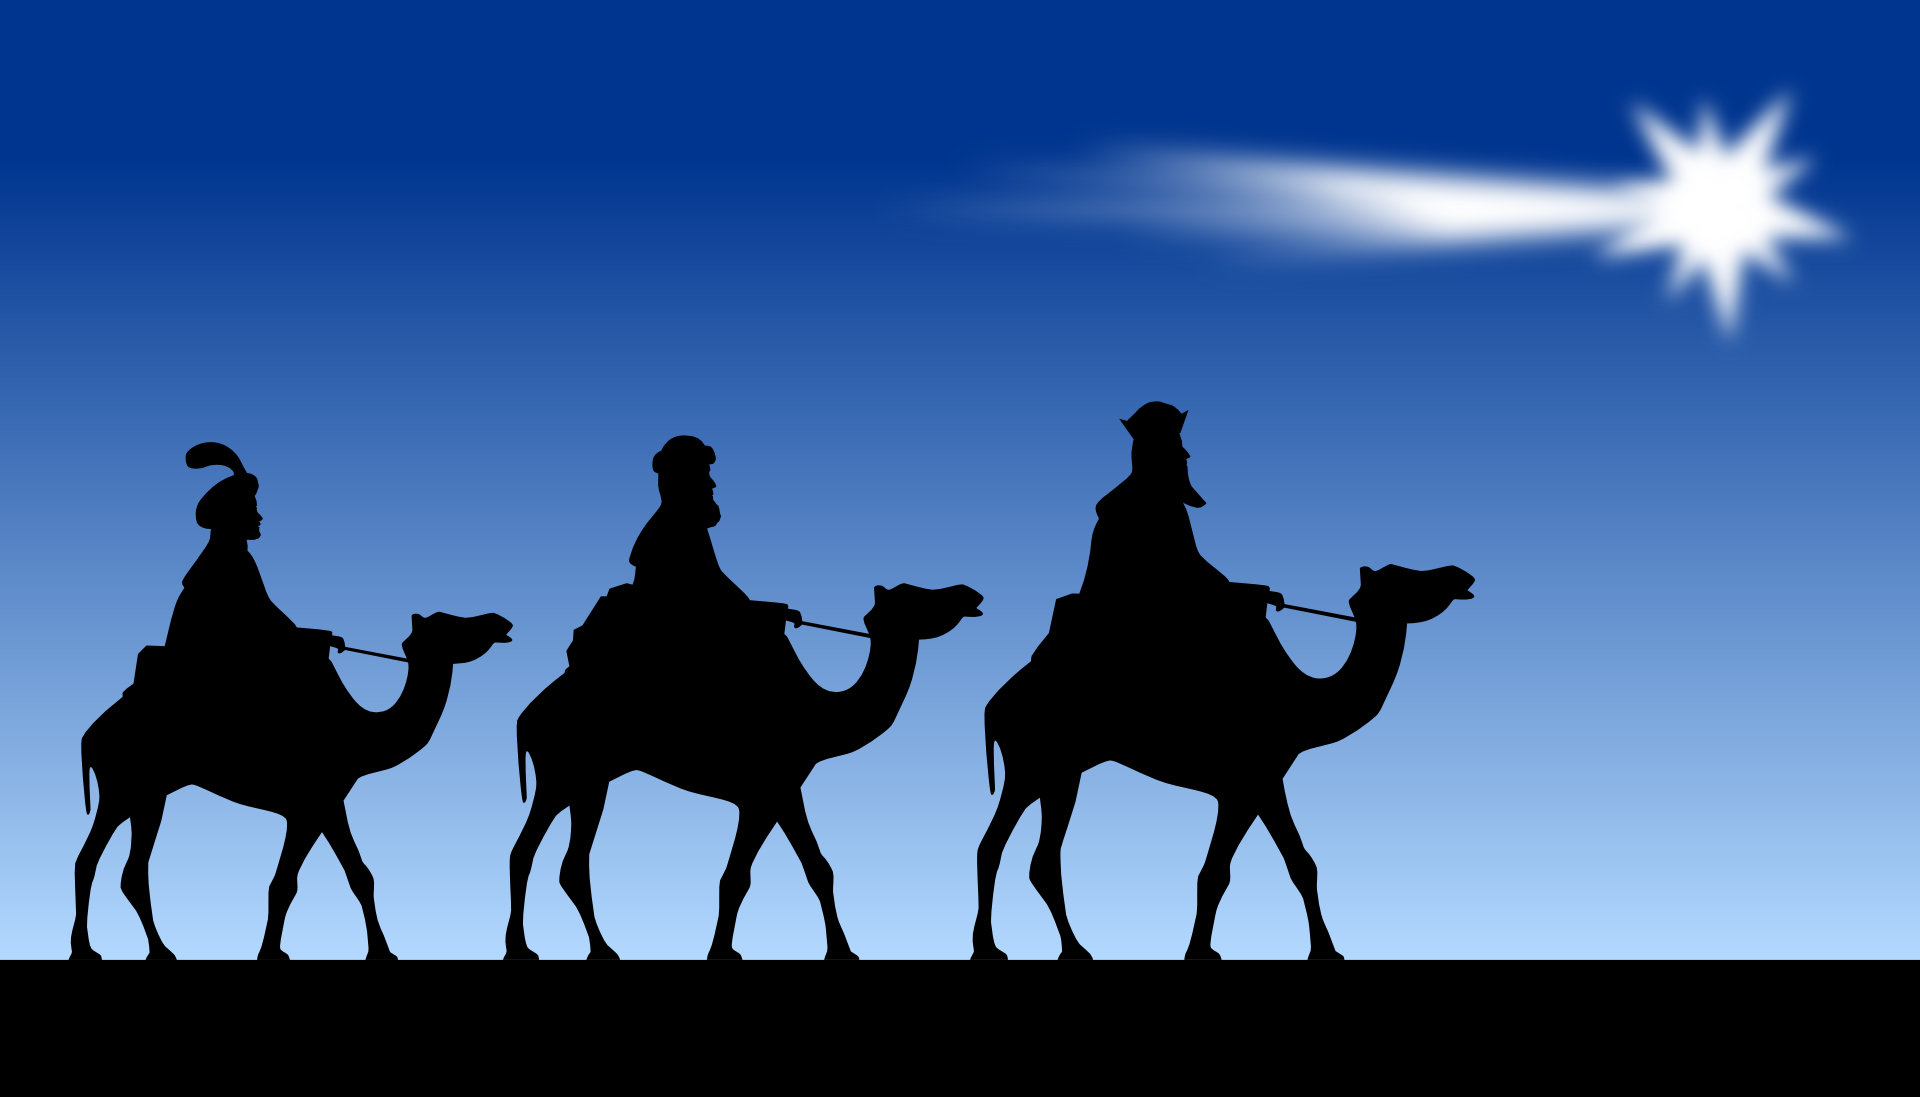 Who are the wise men 98